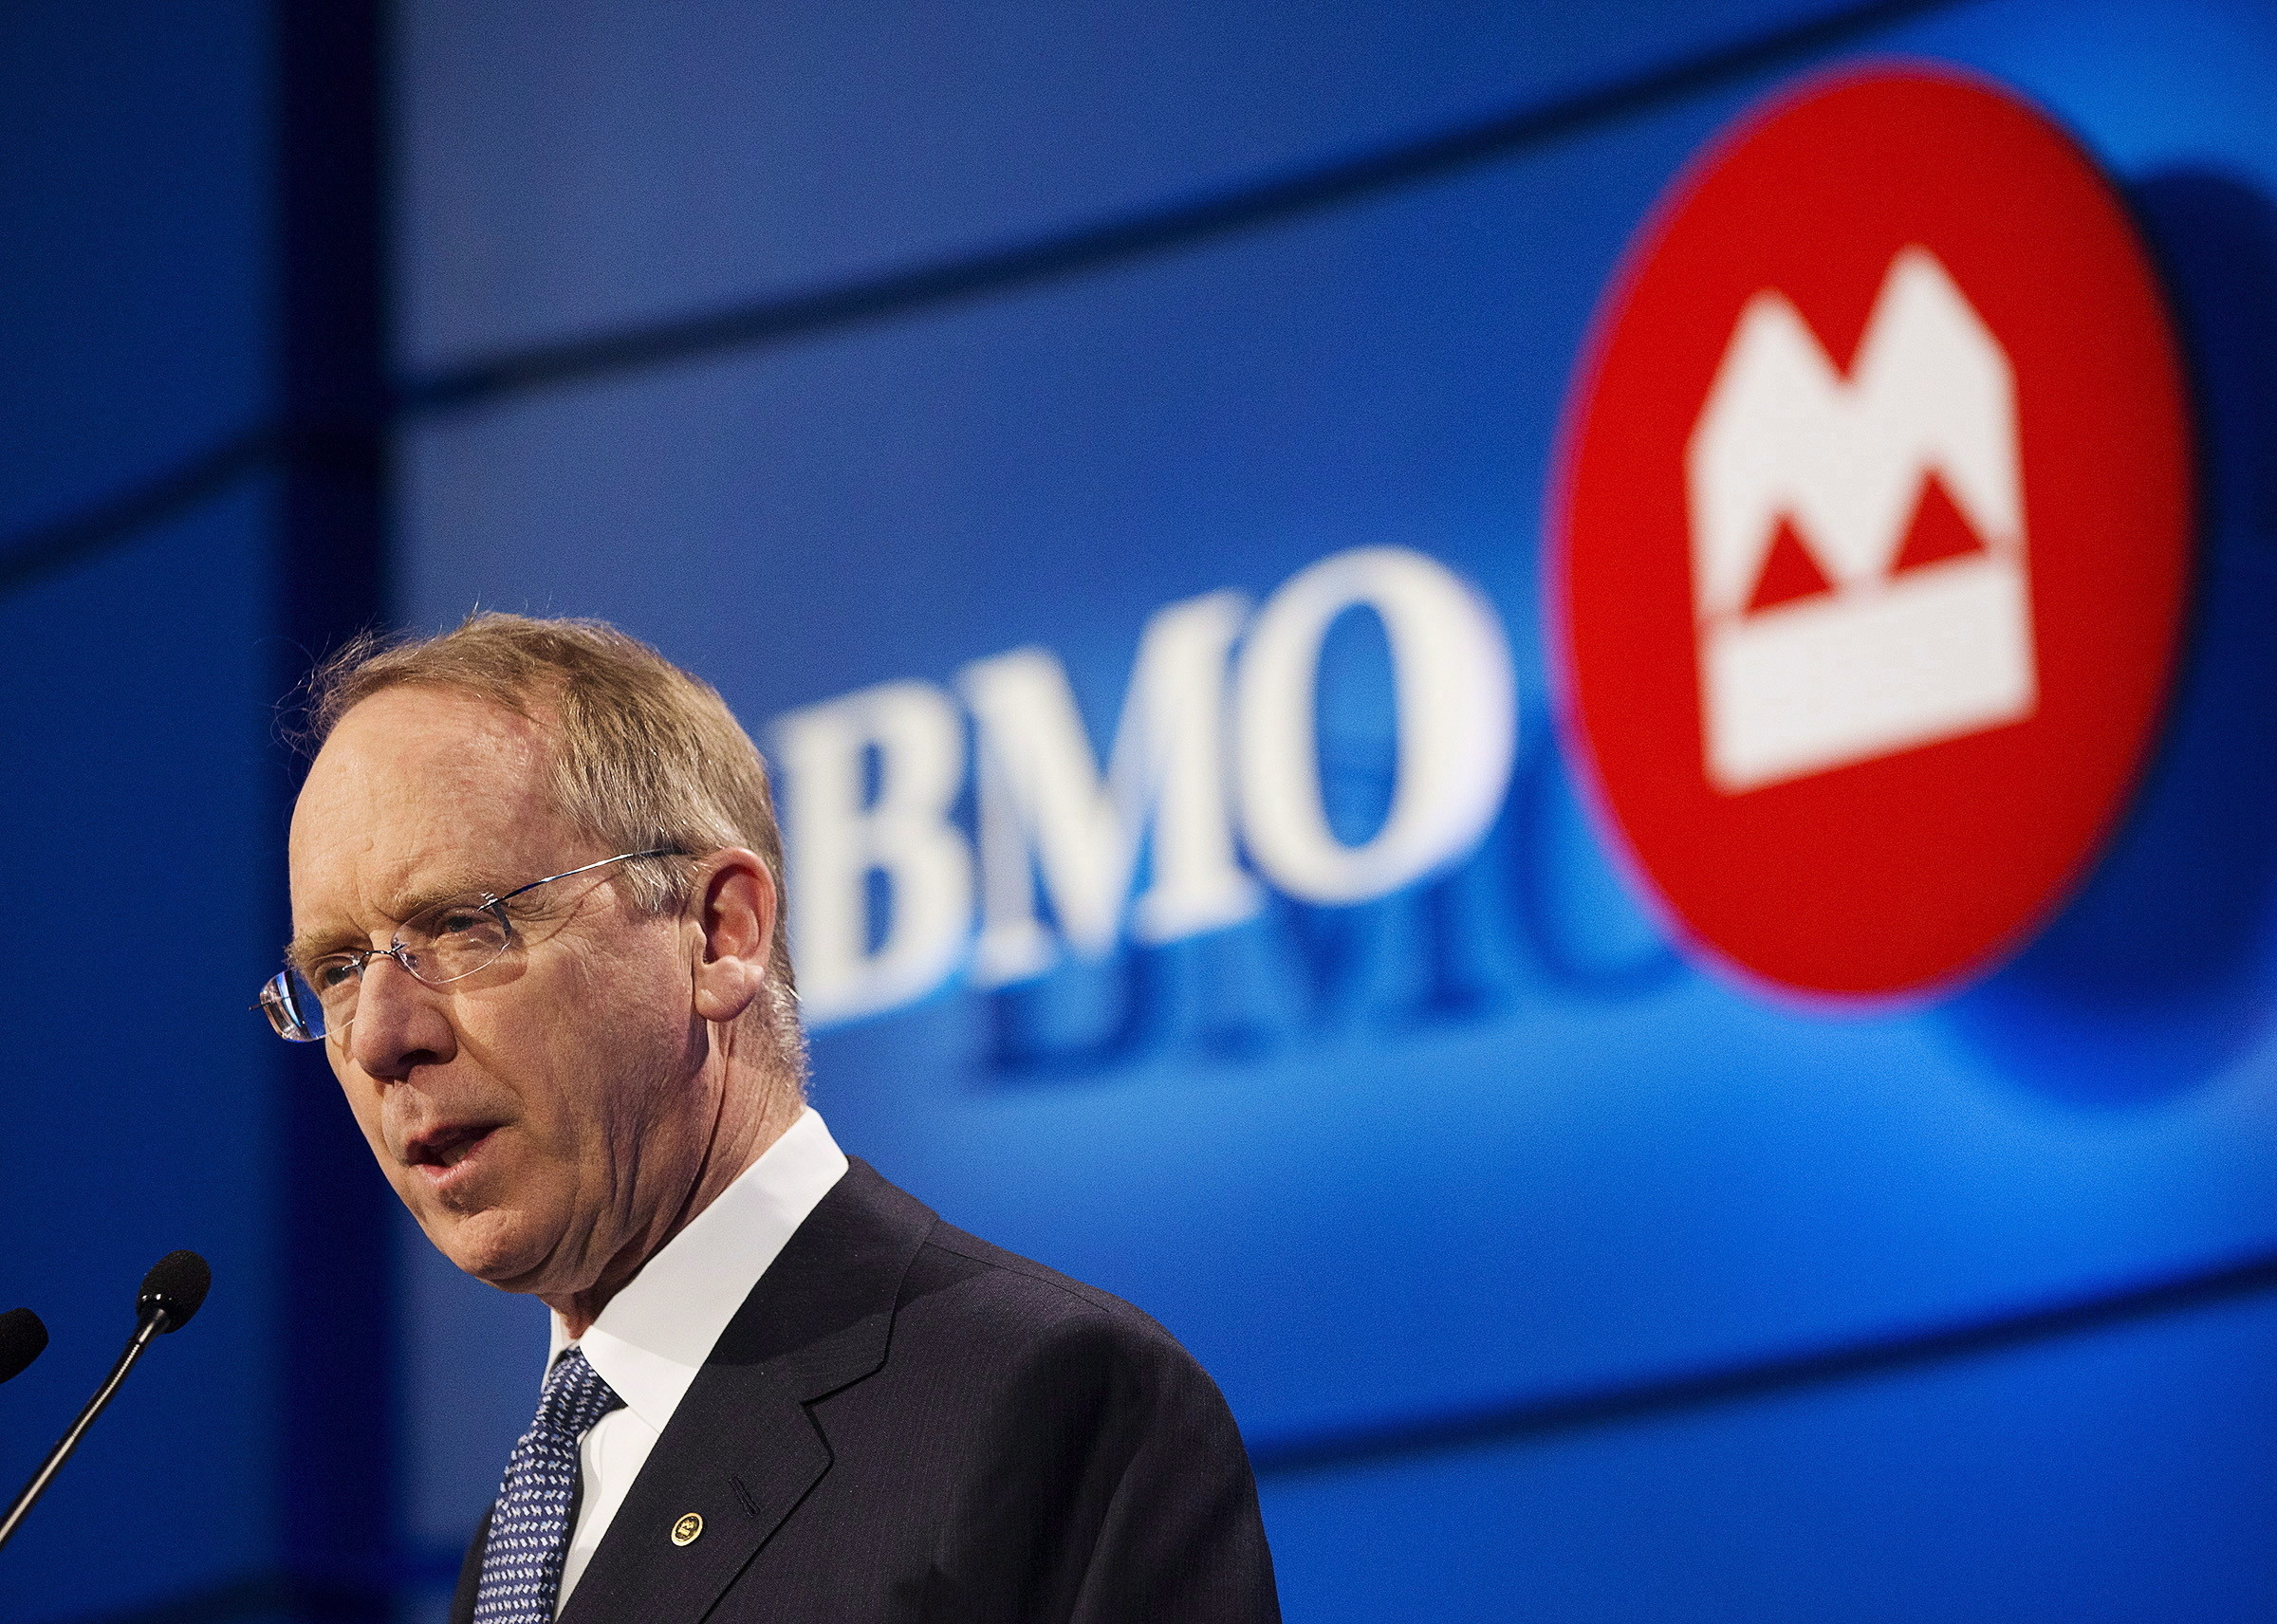 bill downe bmo